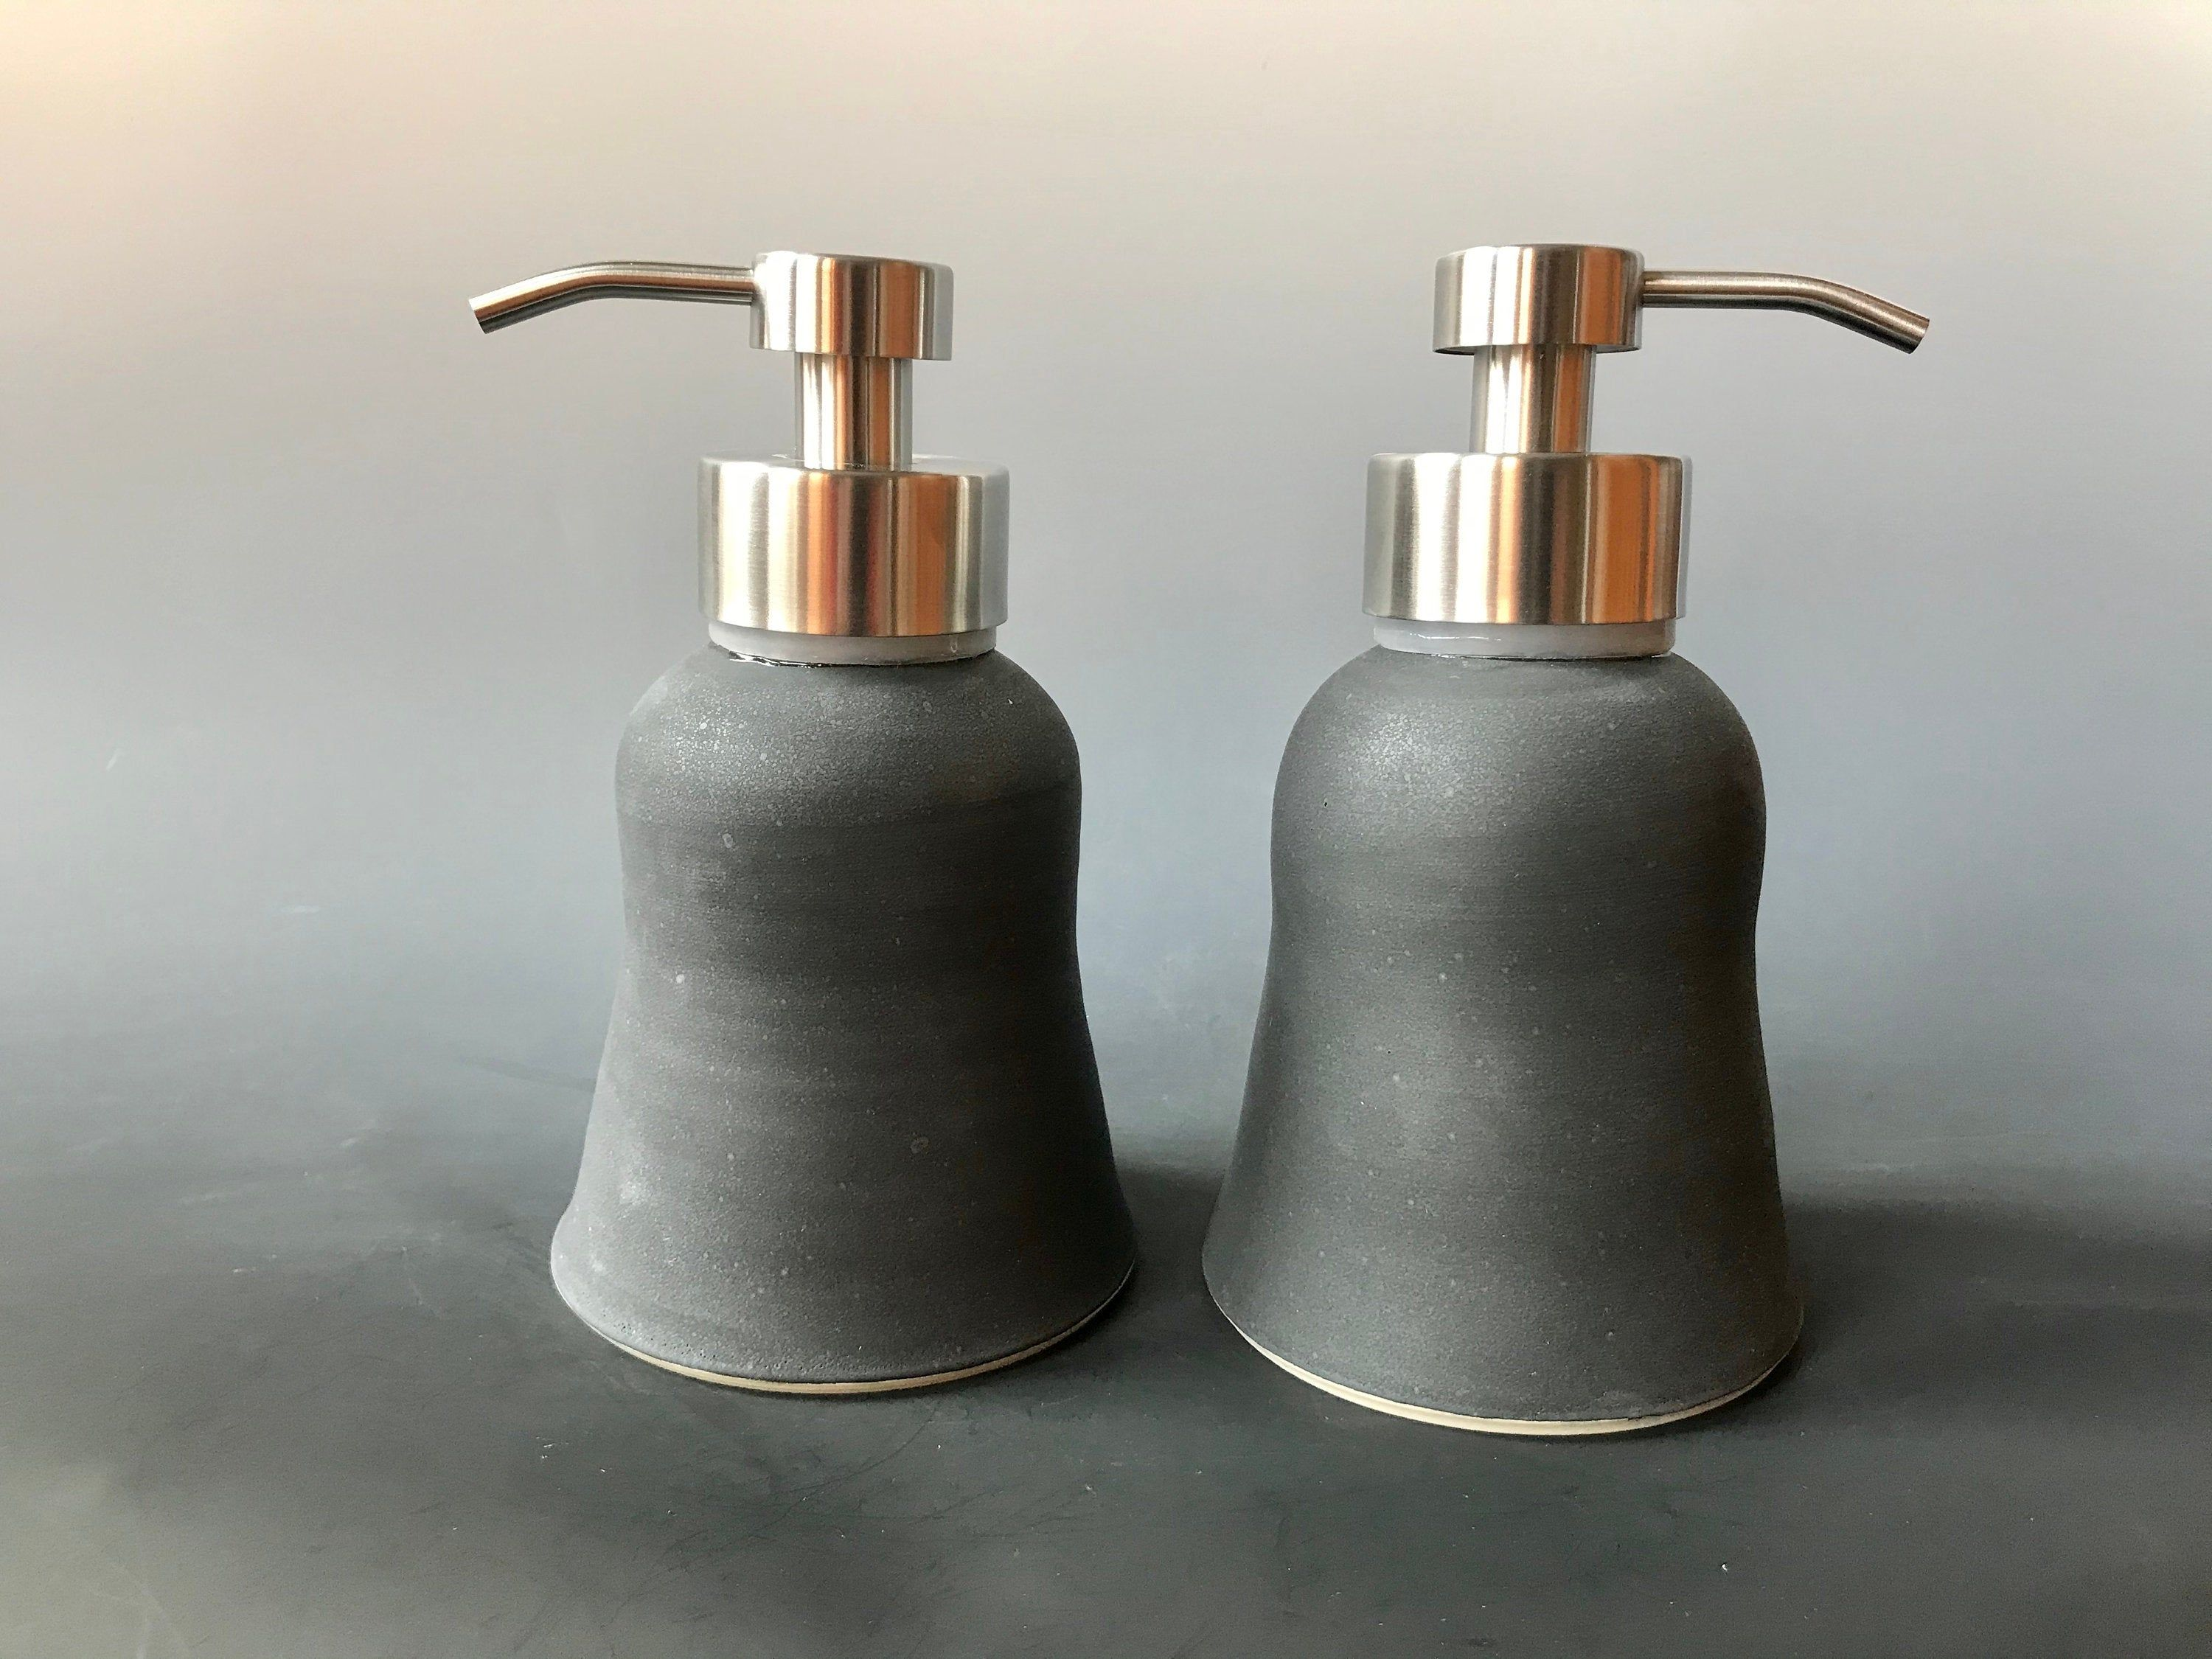 Matte Black Foaming Ceramic Soap Dispenser Stainless Steel